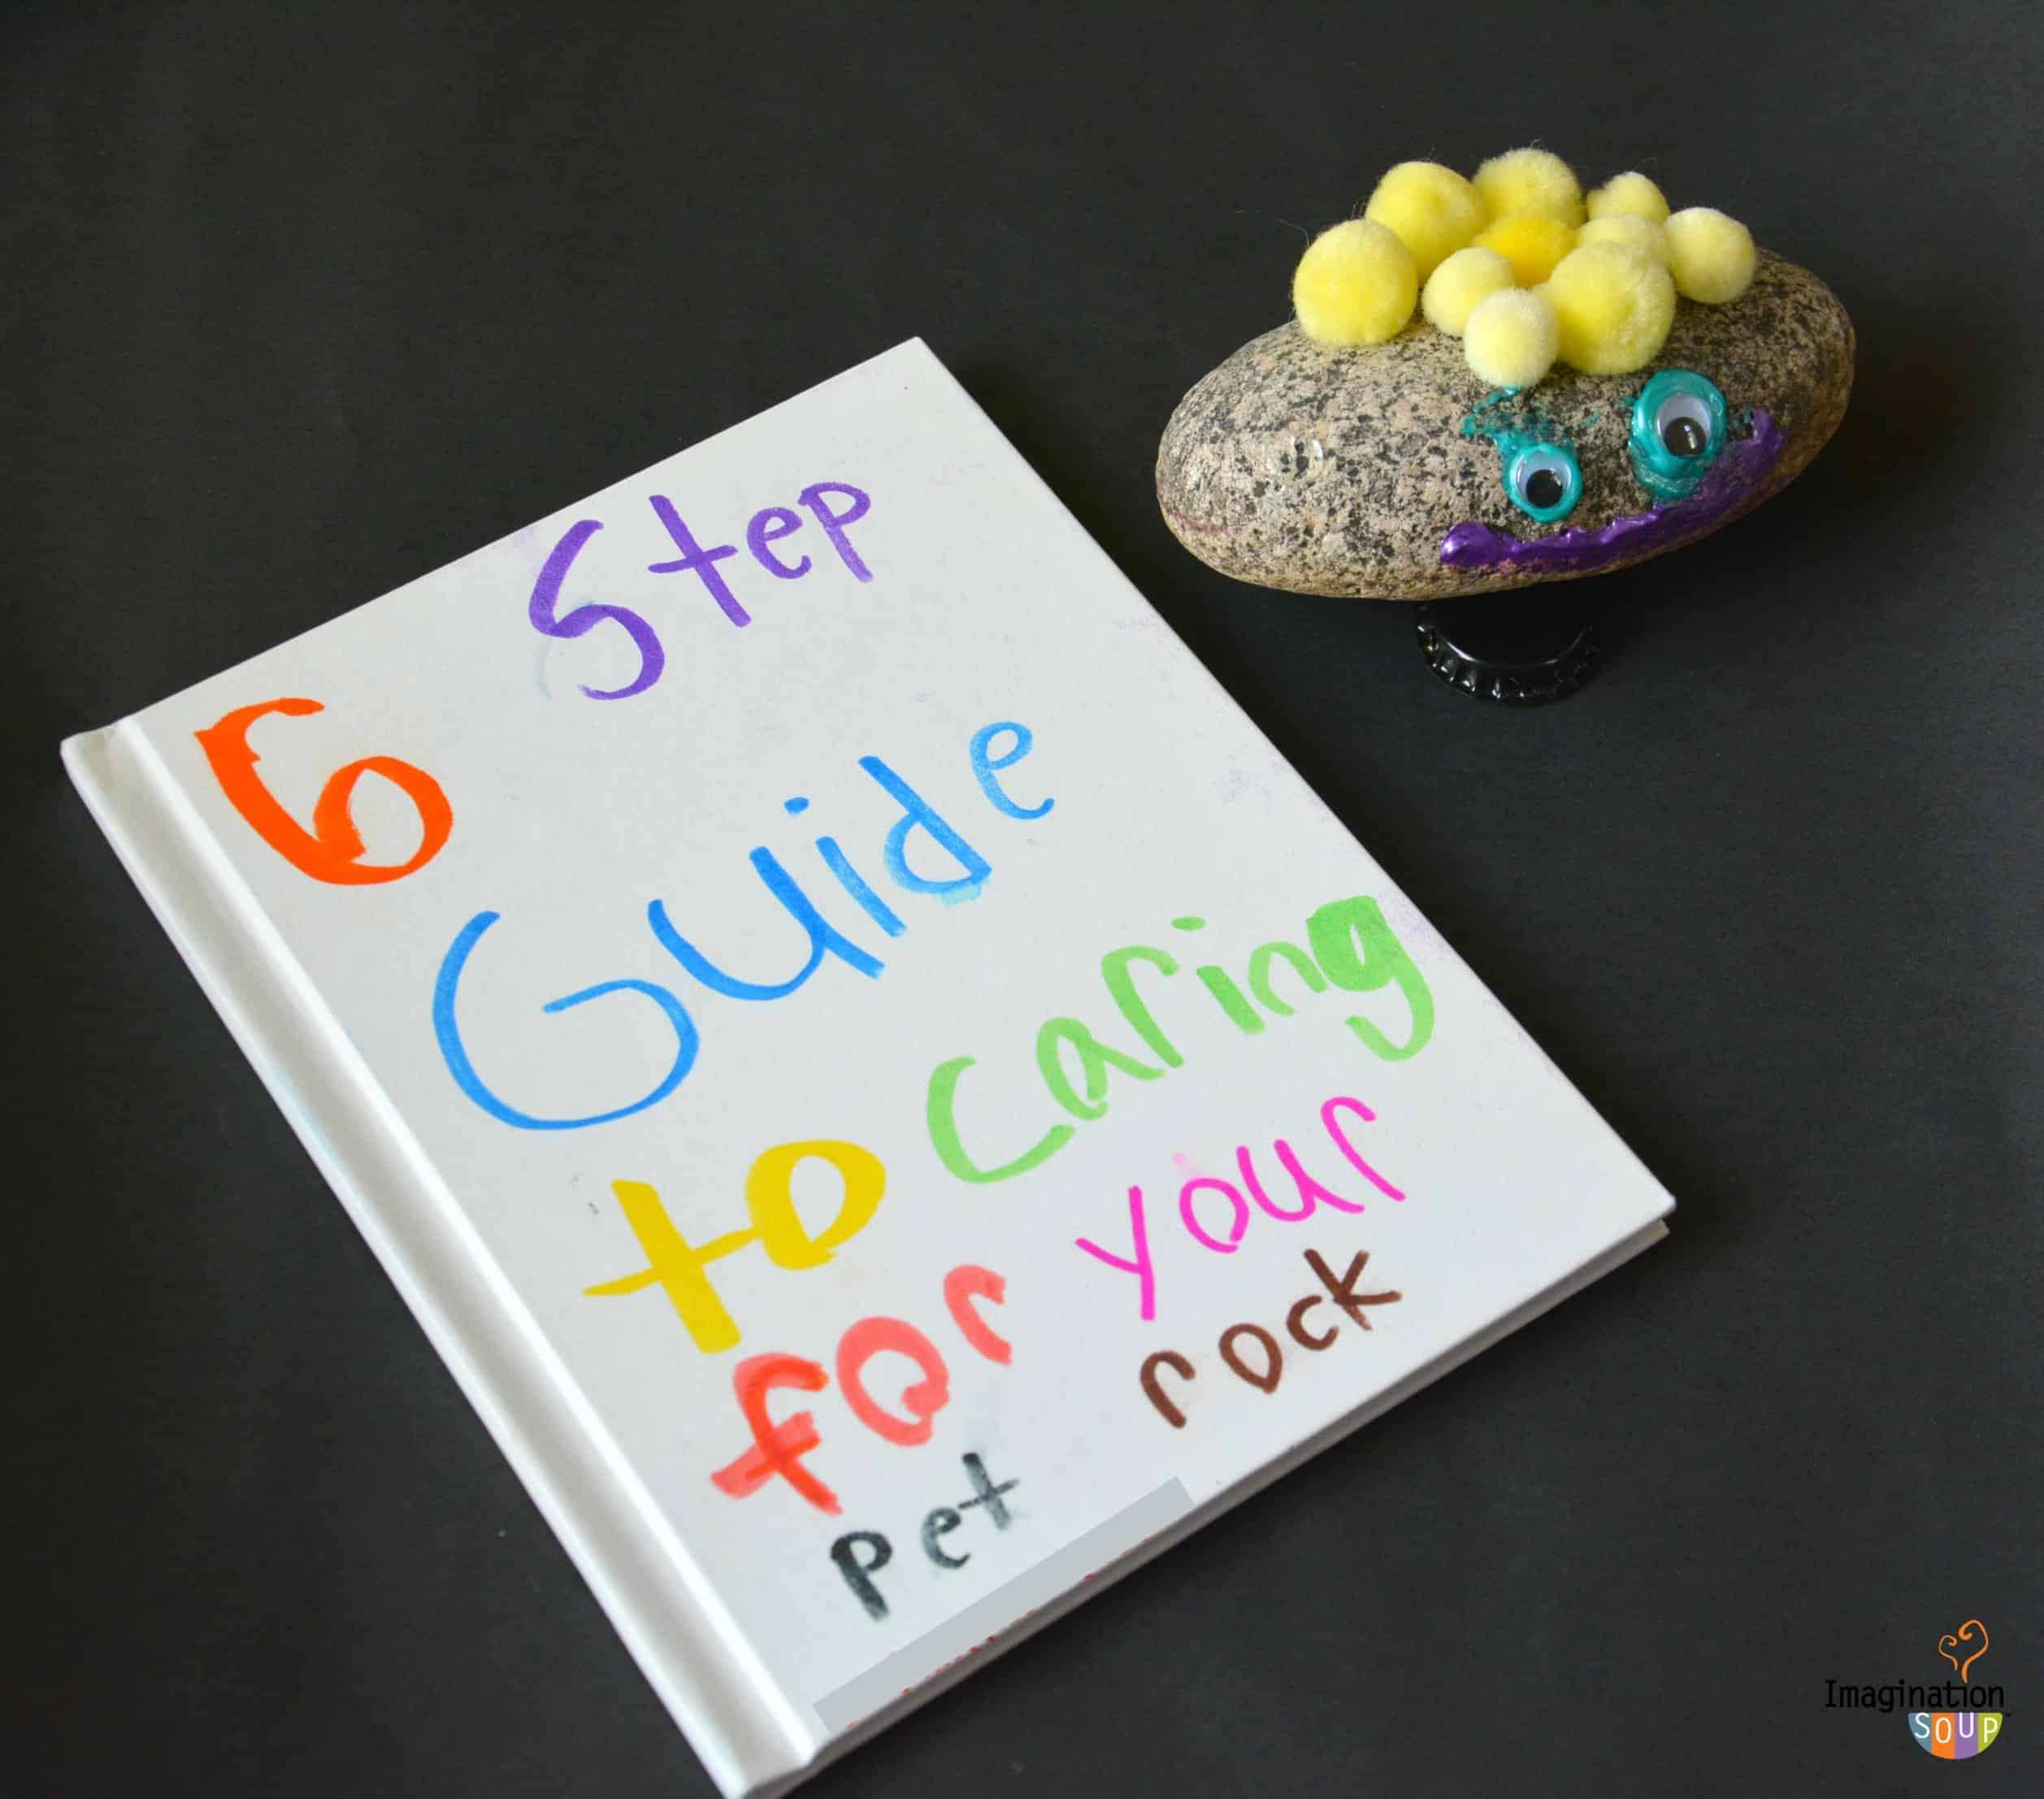 Project: Pet Rock (Craft and Writing Activity for Kids)